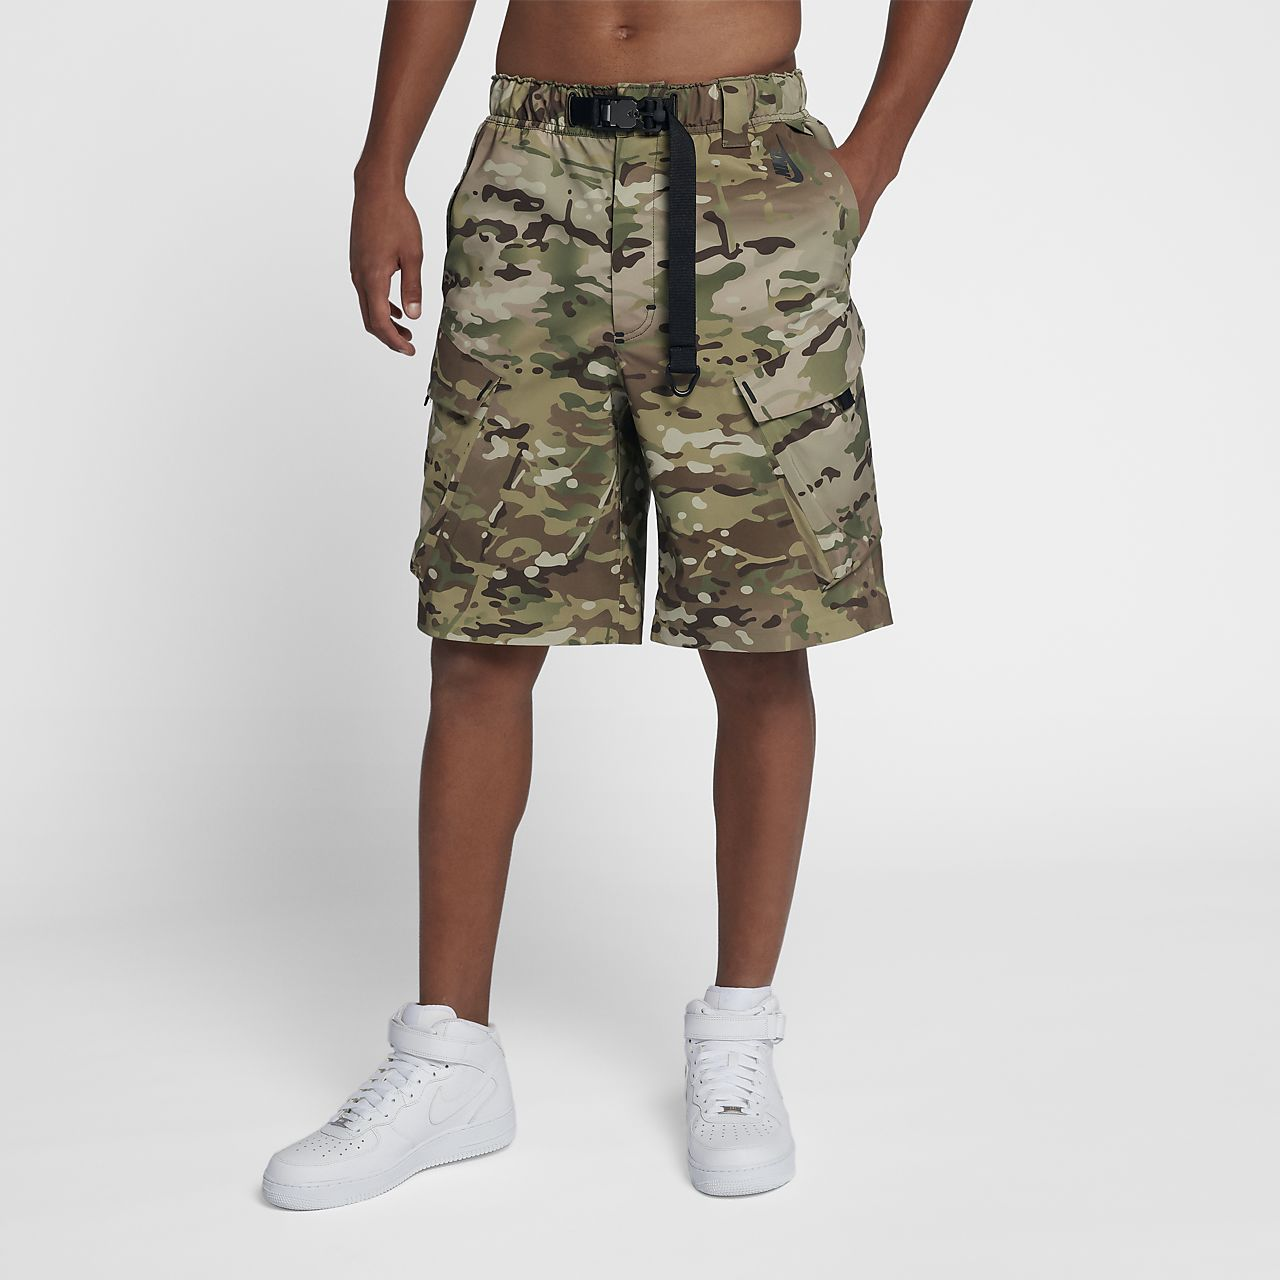 4551a5775ef6 NikeLab Collection Men s Shorts. Nike.com CA